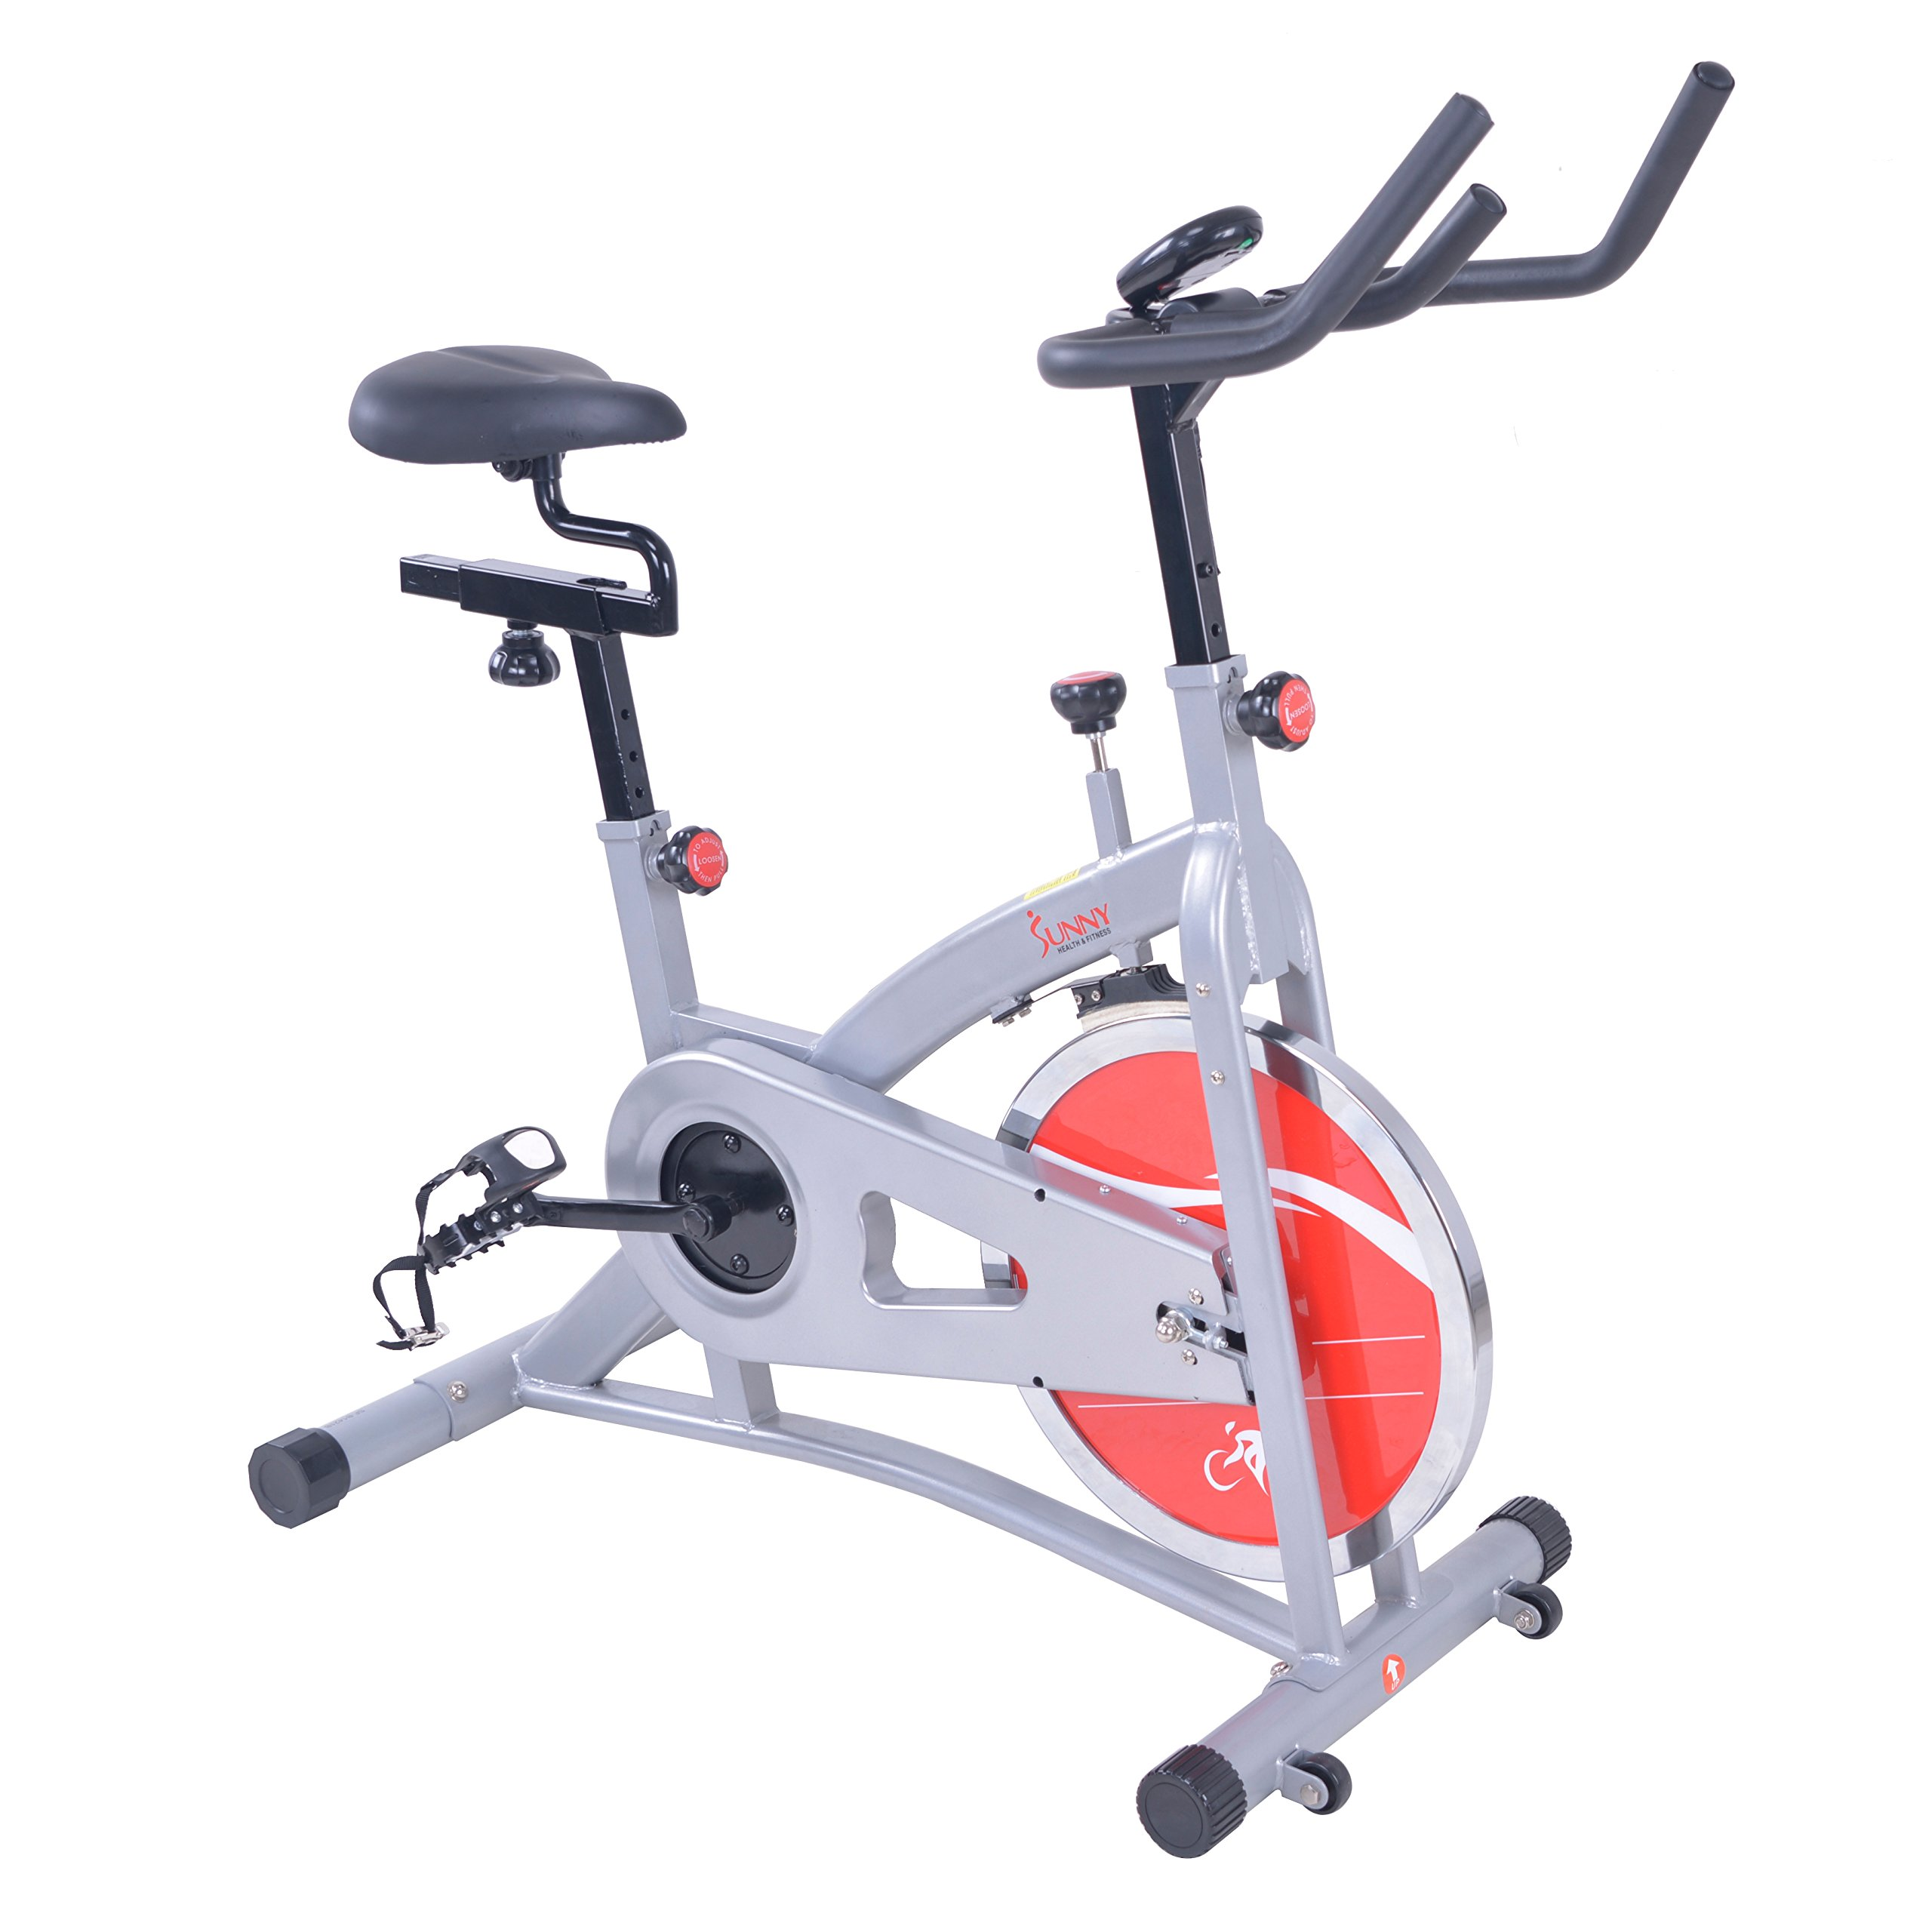 Sunny Health & Fitness SF-B1421B Belt Drive Indoor Cycling Bike by Sunny Health & Fitness